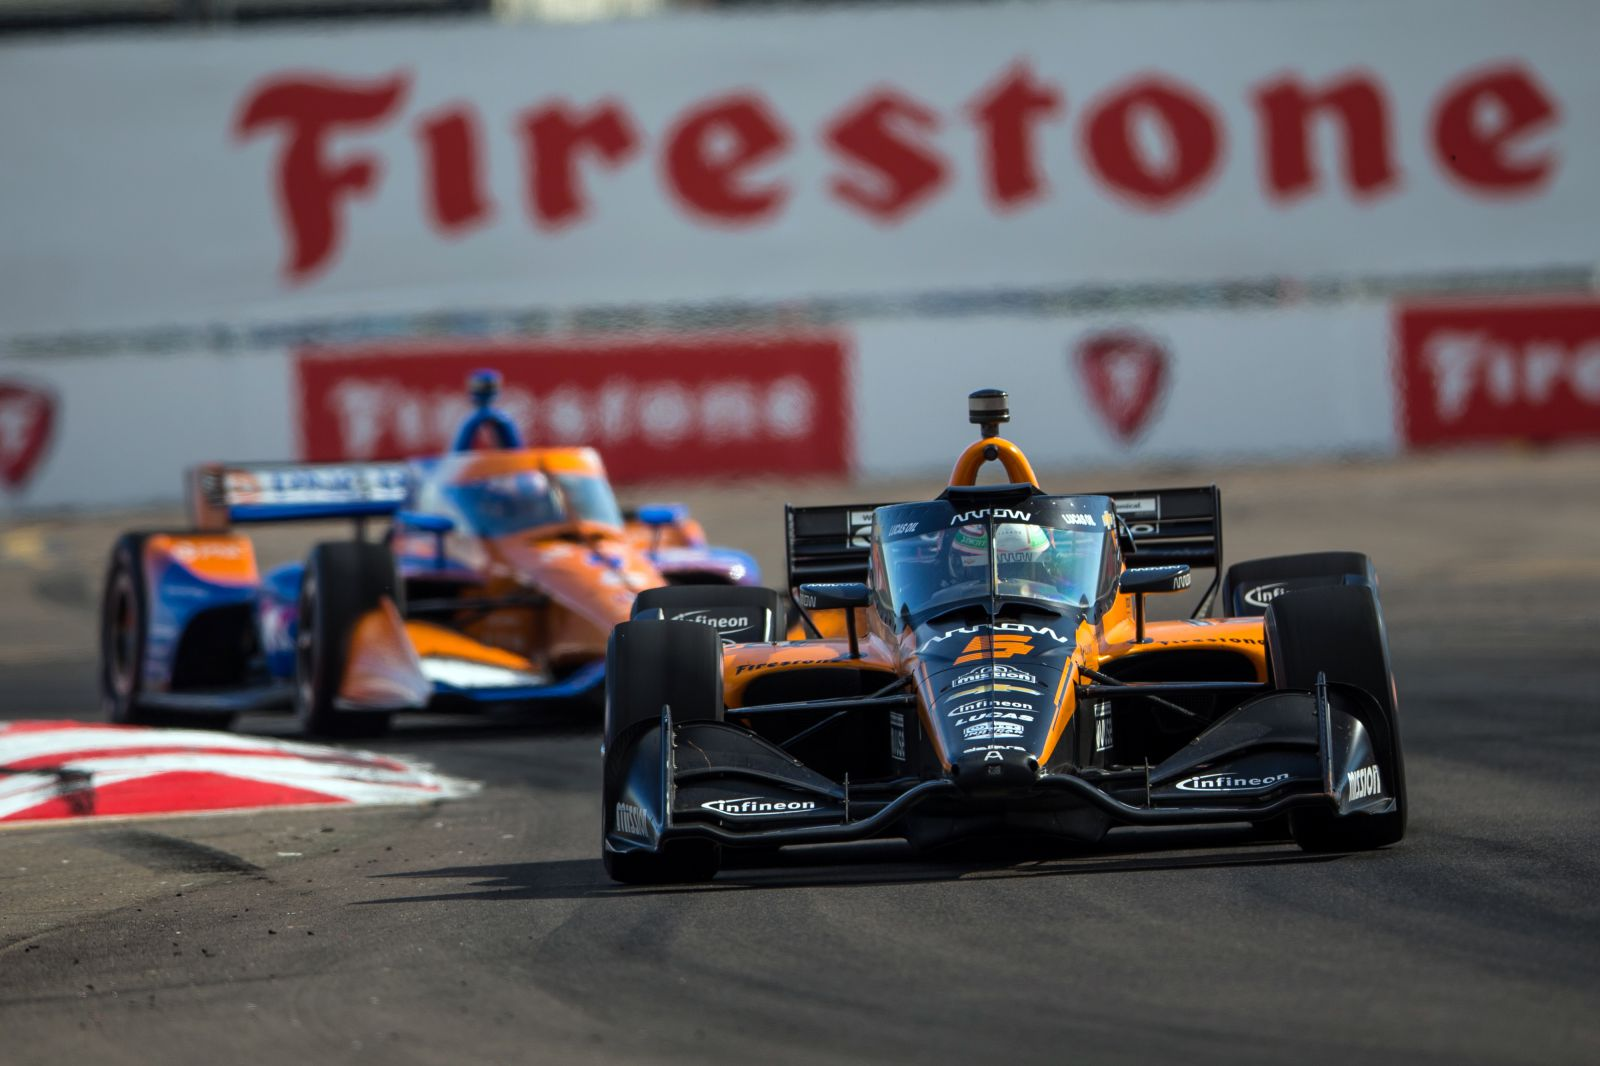 Patricio O'Ward races in front of Scott Dixon at the Firestone Grand Prix of St Petersburg. © [Al Arena / Spacesuit Media]